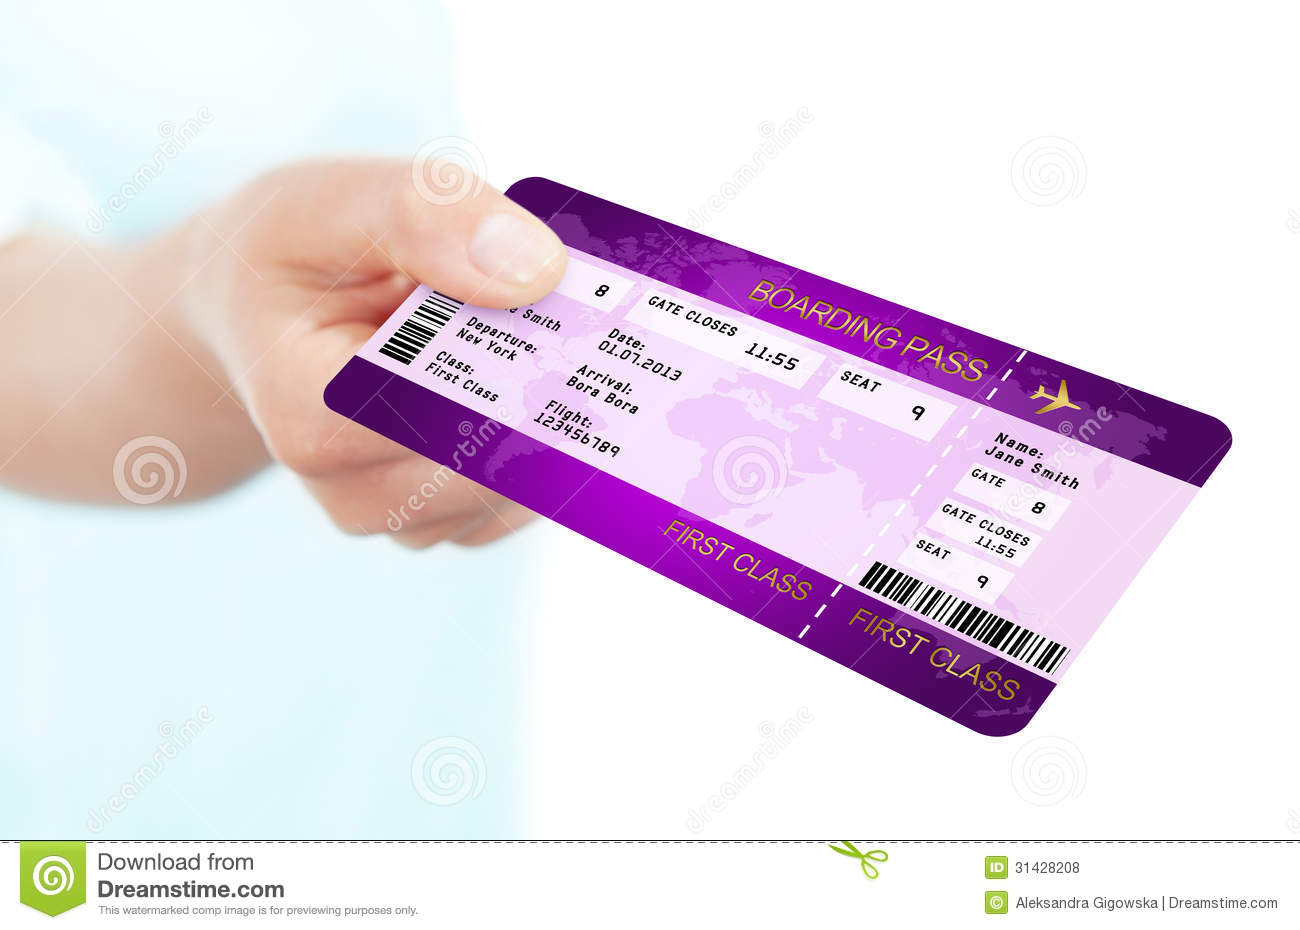 Fly boarding pass ticket holded by hand over white background royalty